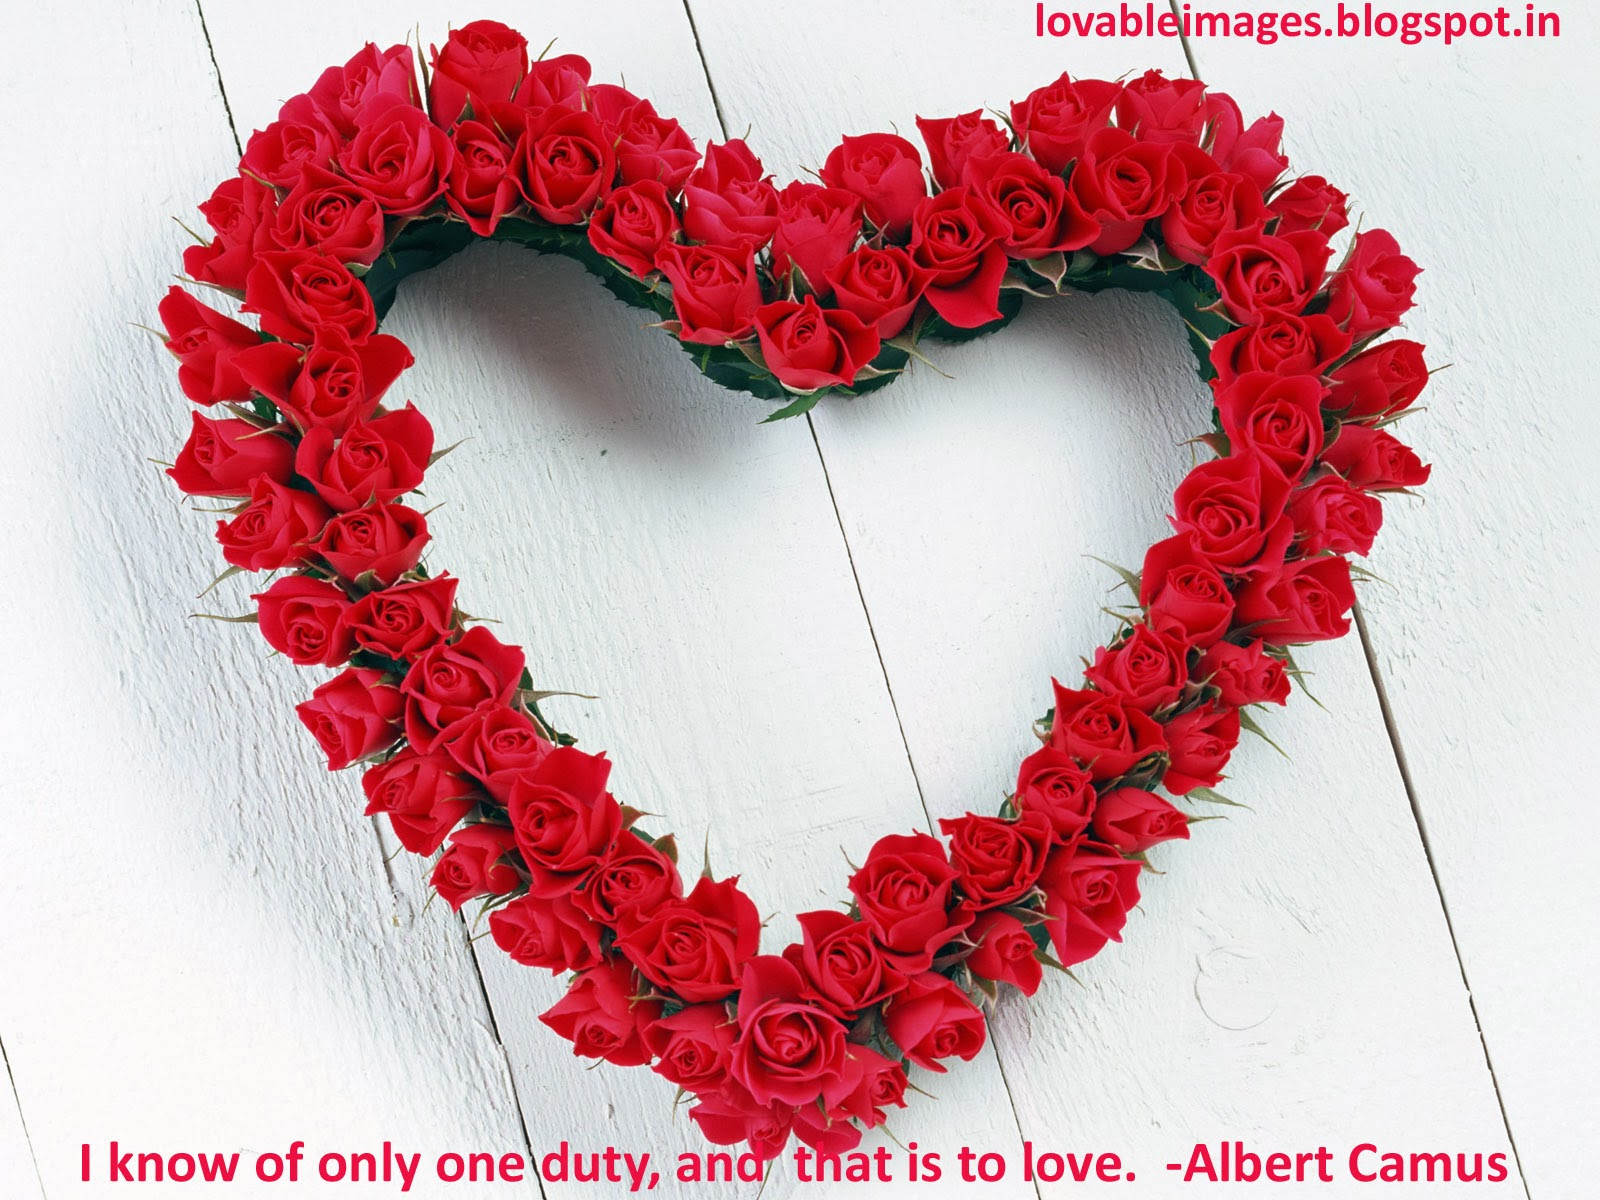 valentines day images with quotes hd - Lovable Best Valentine s Day Love Quotes With HD